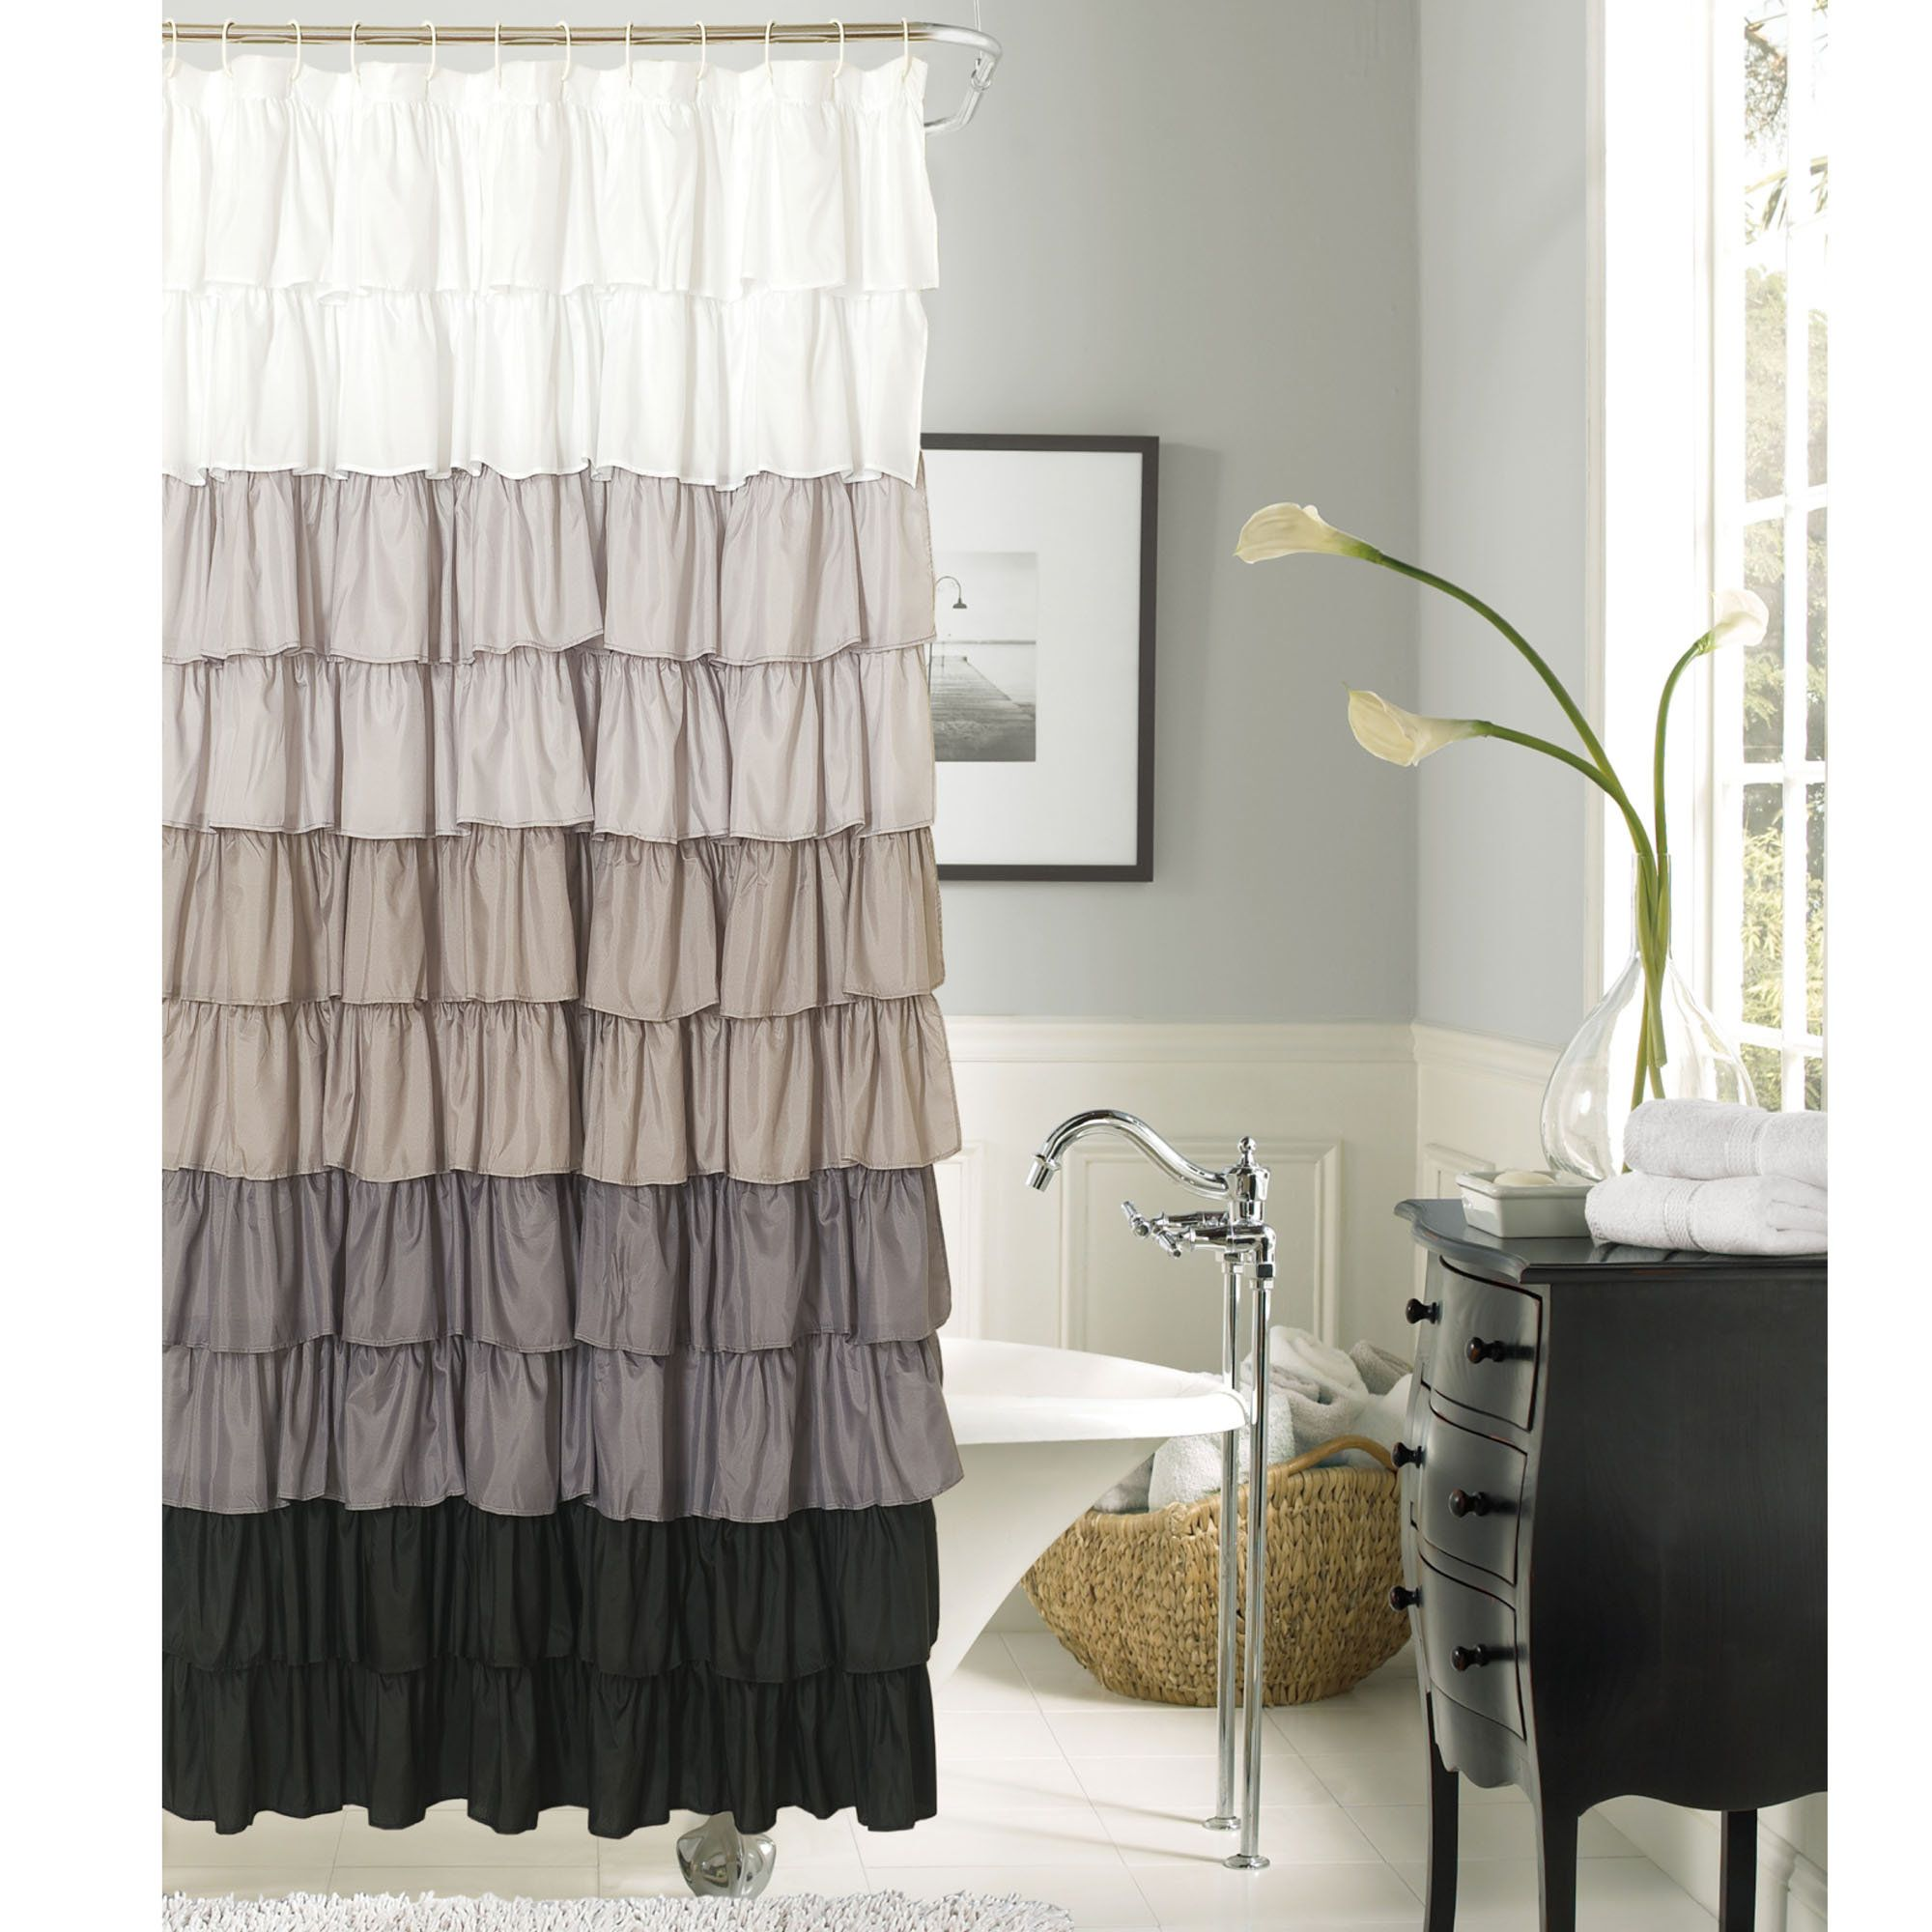 Flamenco ruffled shower curtain charcoal x i will have this